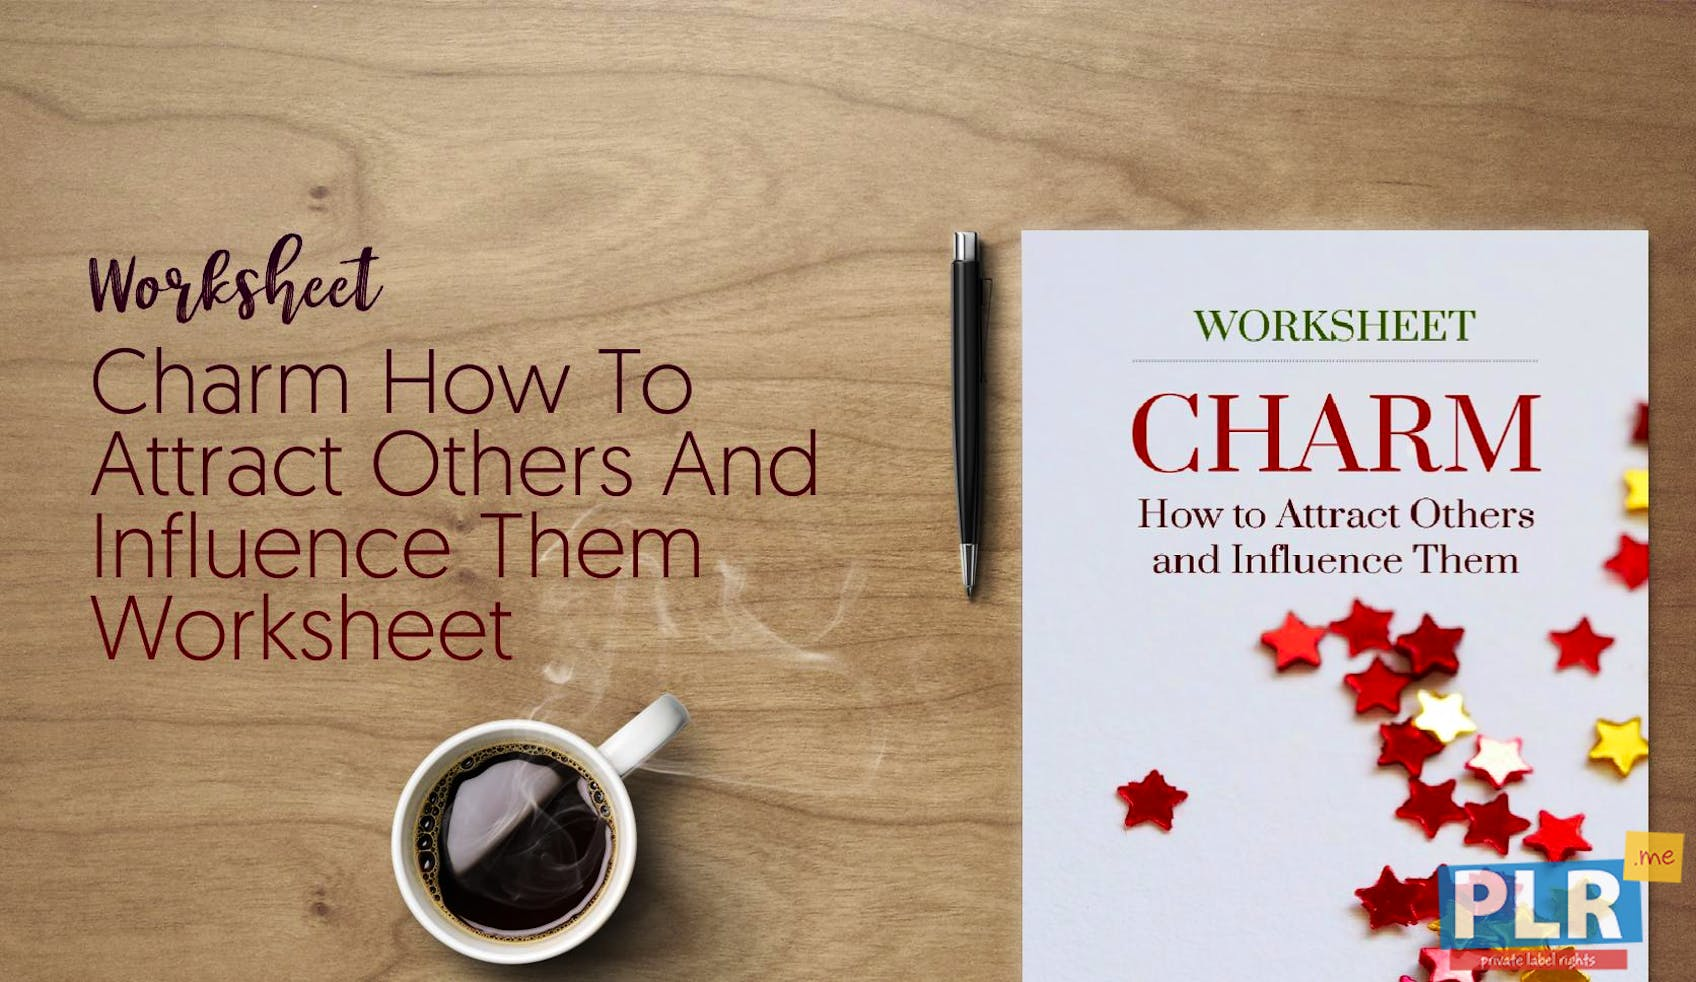 Charm How To Attract Others And Influence Them Worksheet